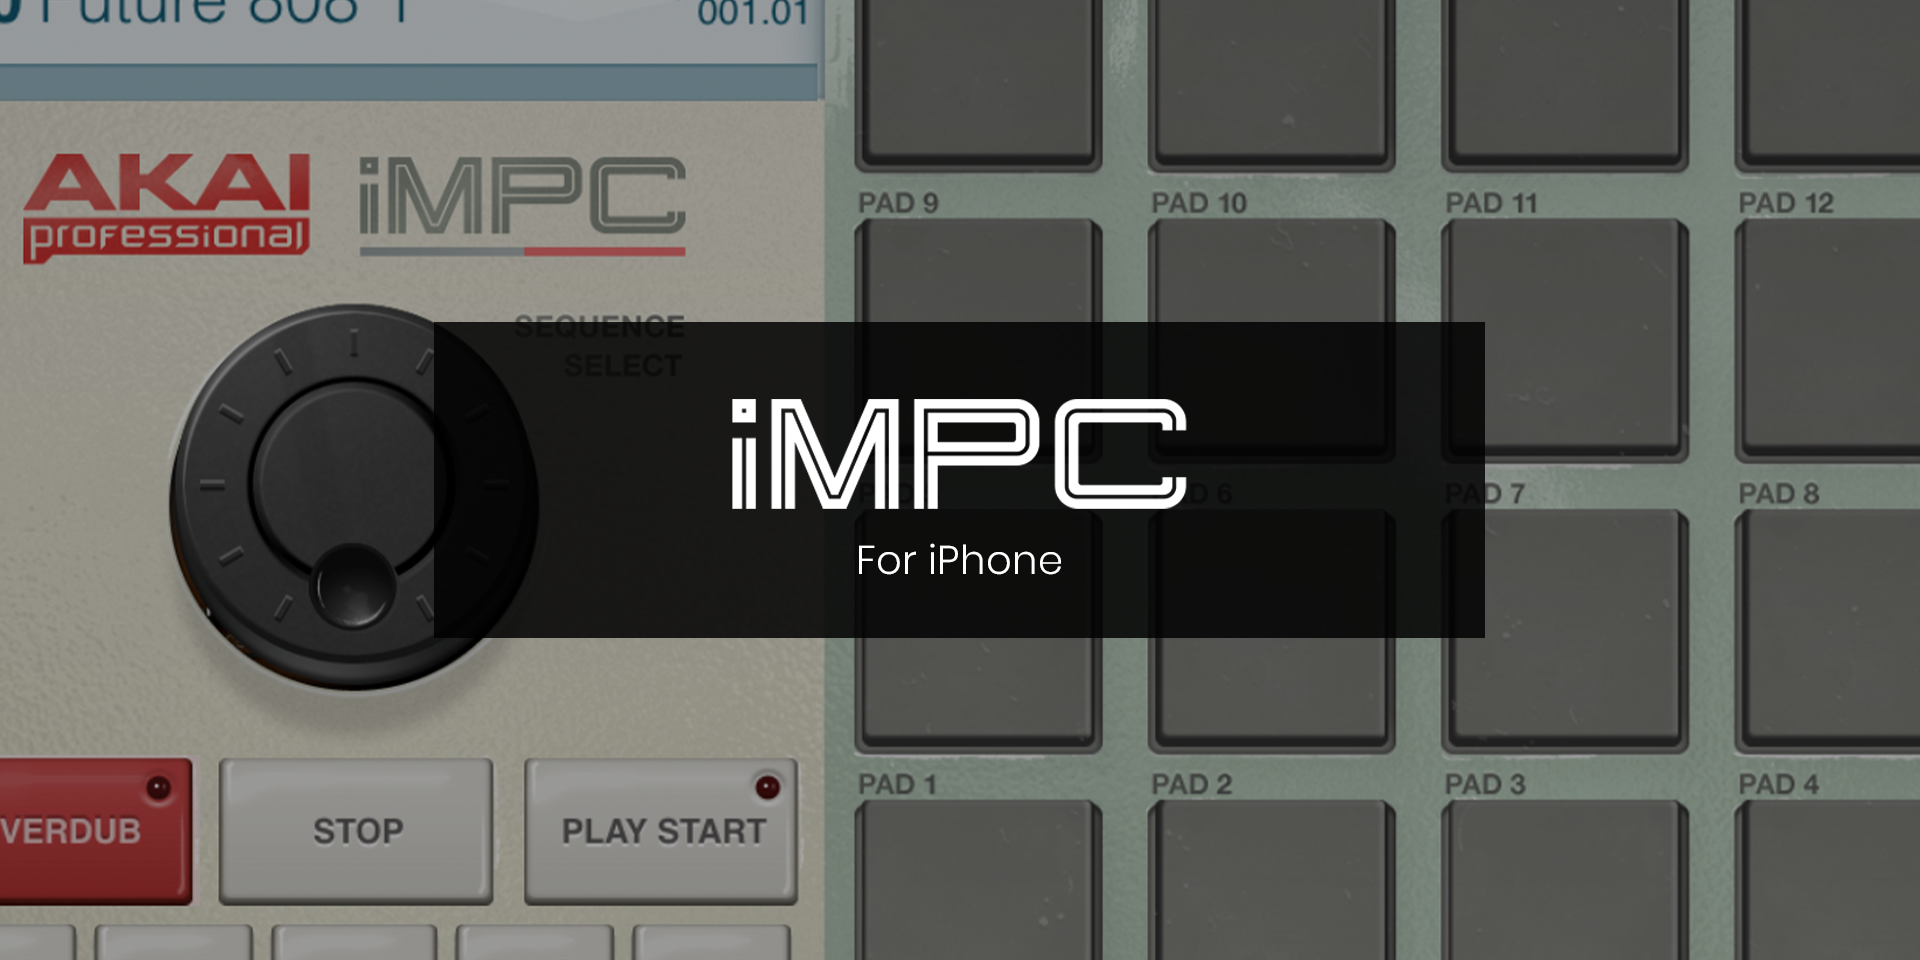 Akai Professional iMPC for iPhone